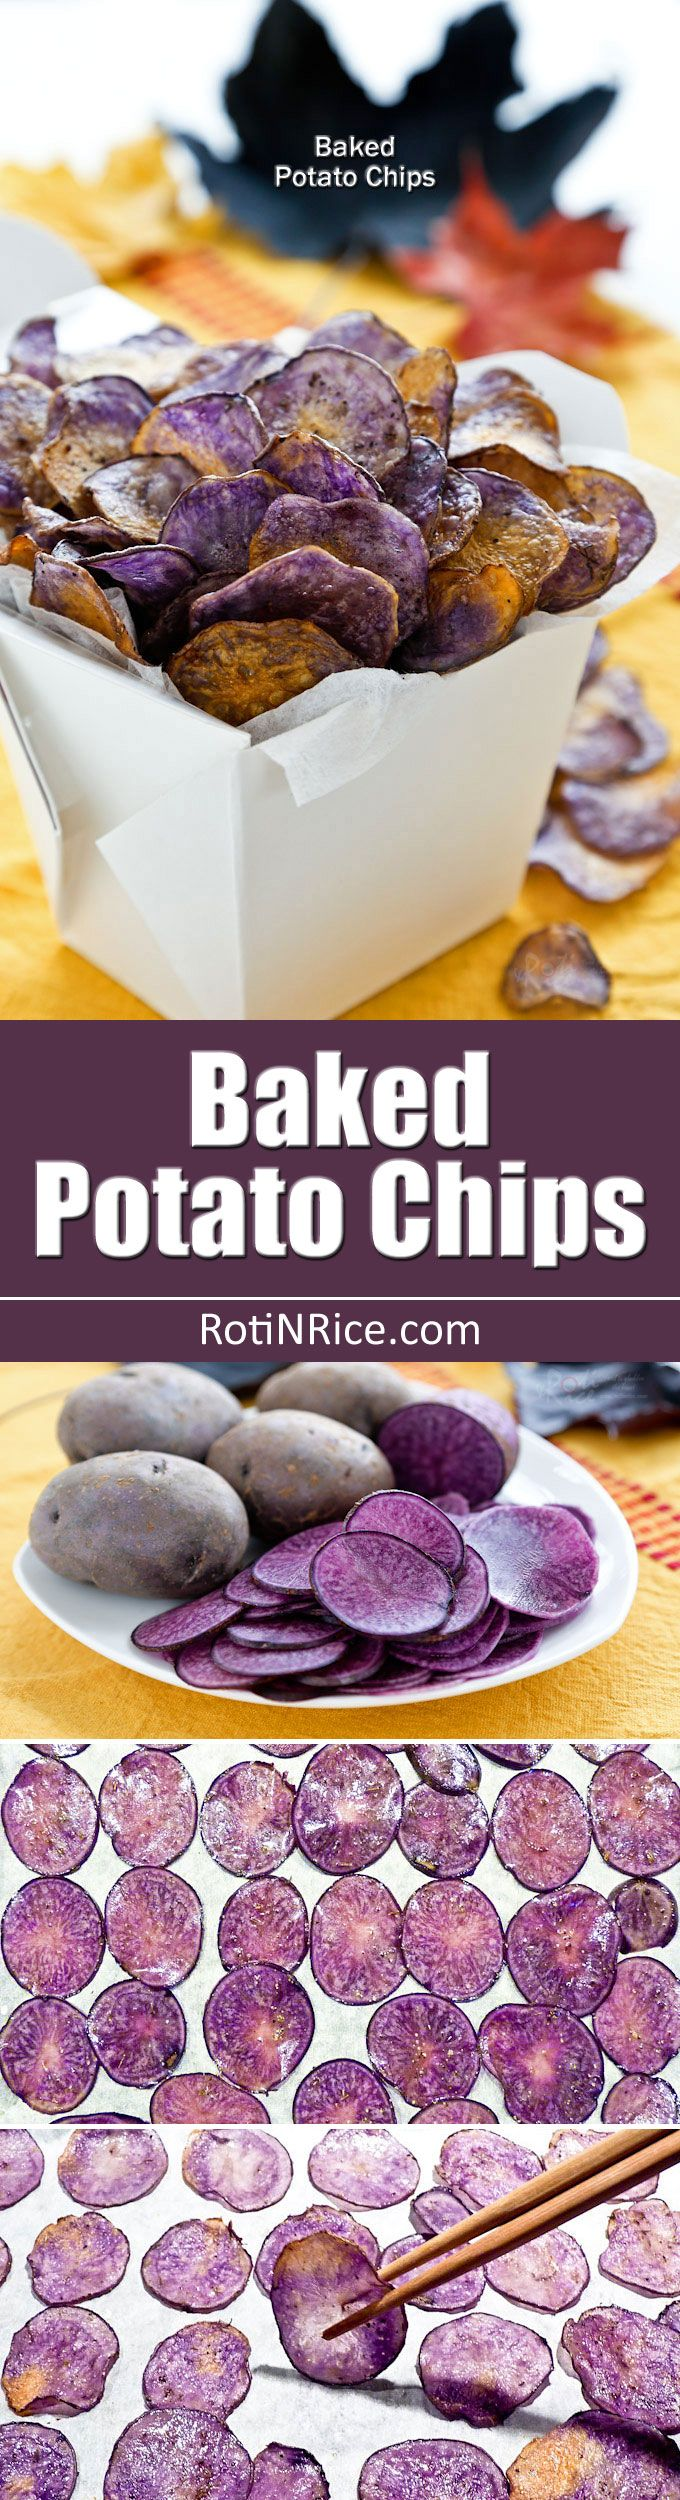 Homemade Baked Potato Chips flavored with salt, pepper, and thyme. Conventional potatoes may be used but Purple Majesty potatoes make these chips stunning! | RotiNRice.com